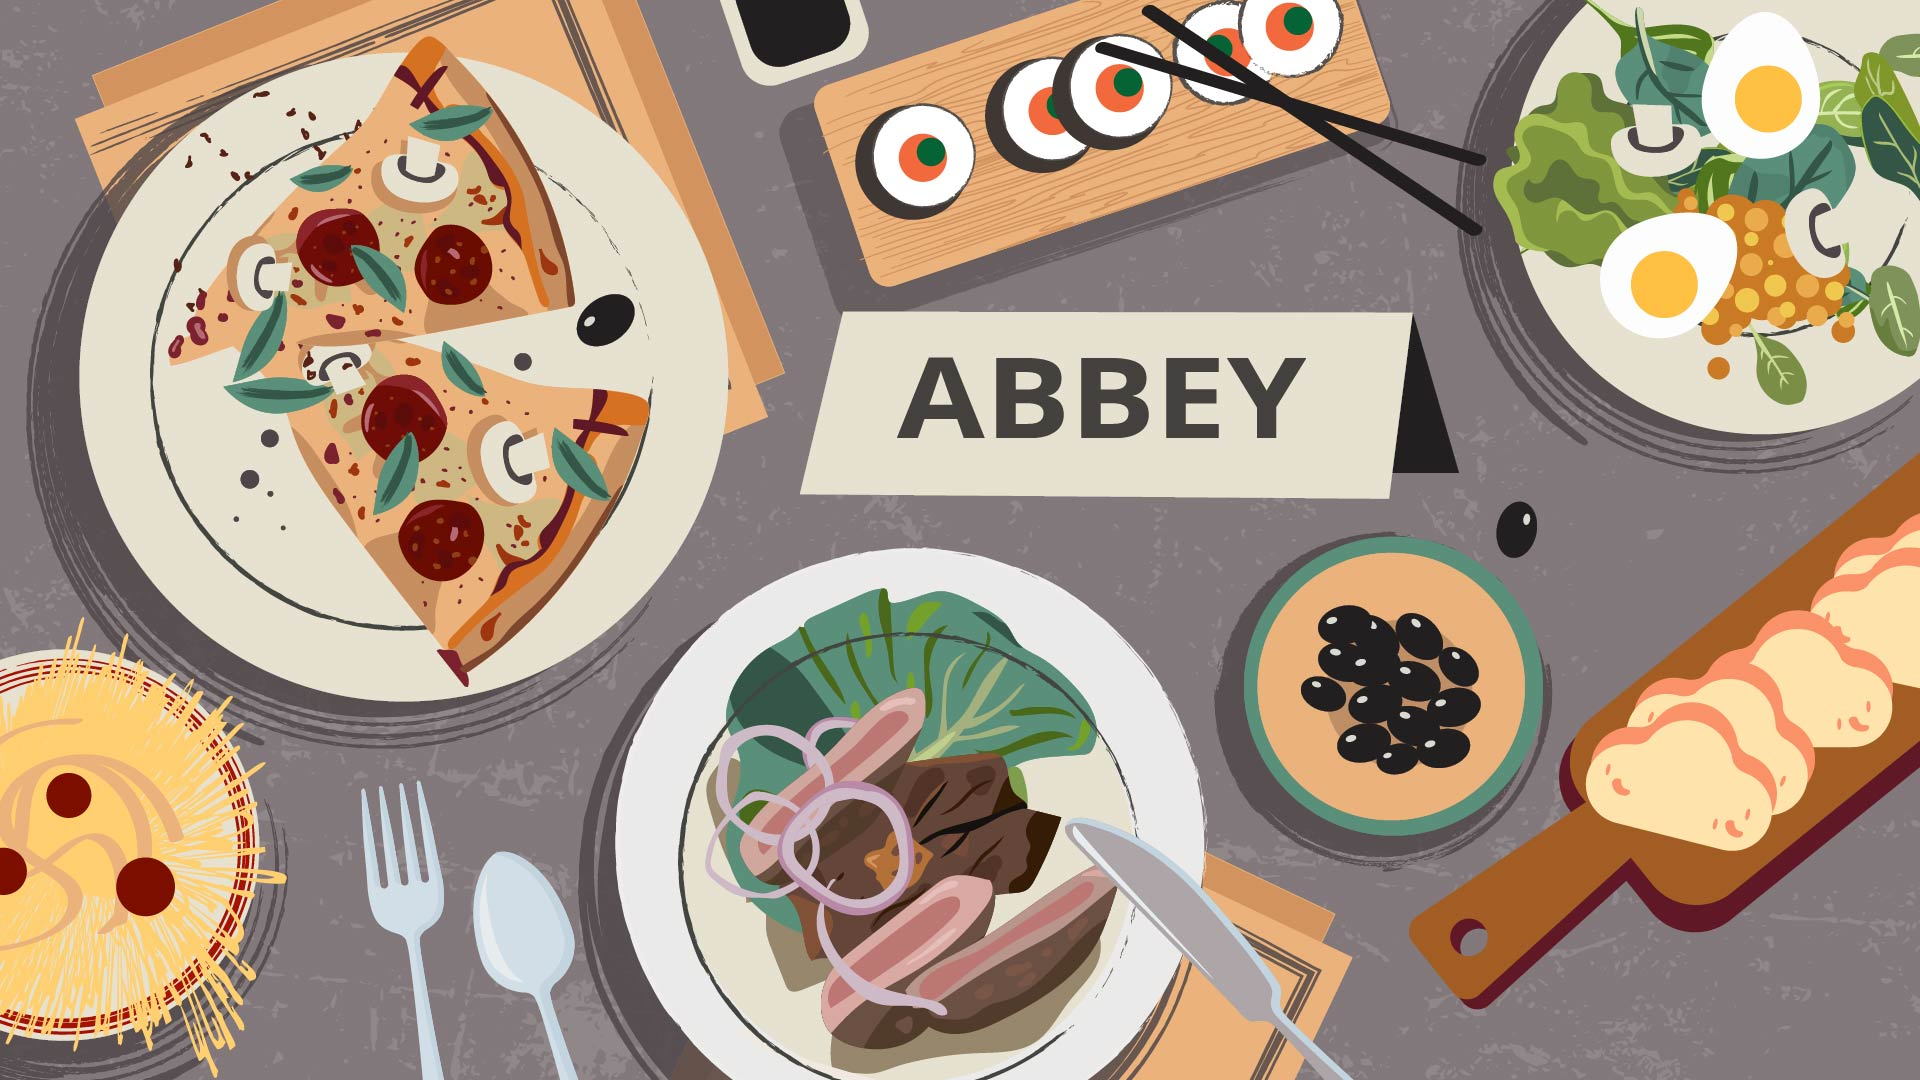 Abbey. A Spotify for Meals. 2D Animated Video